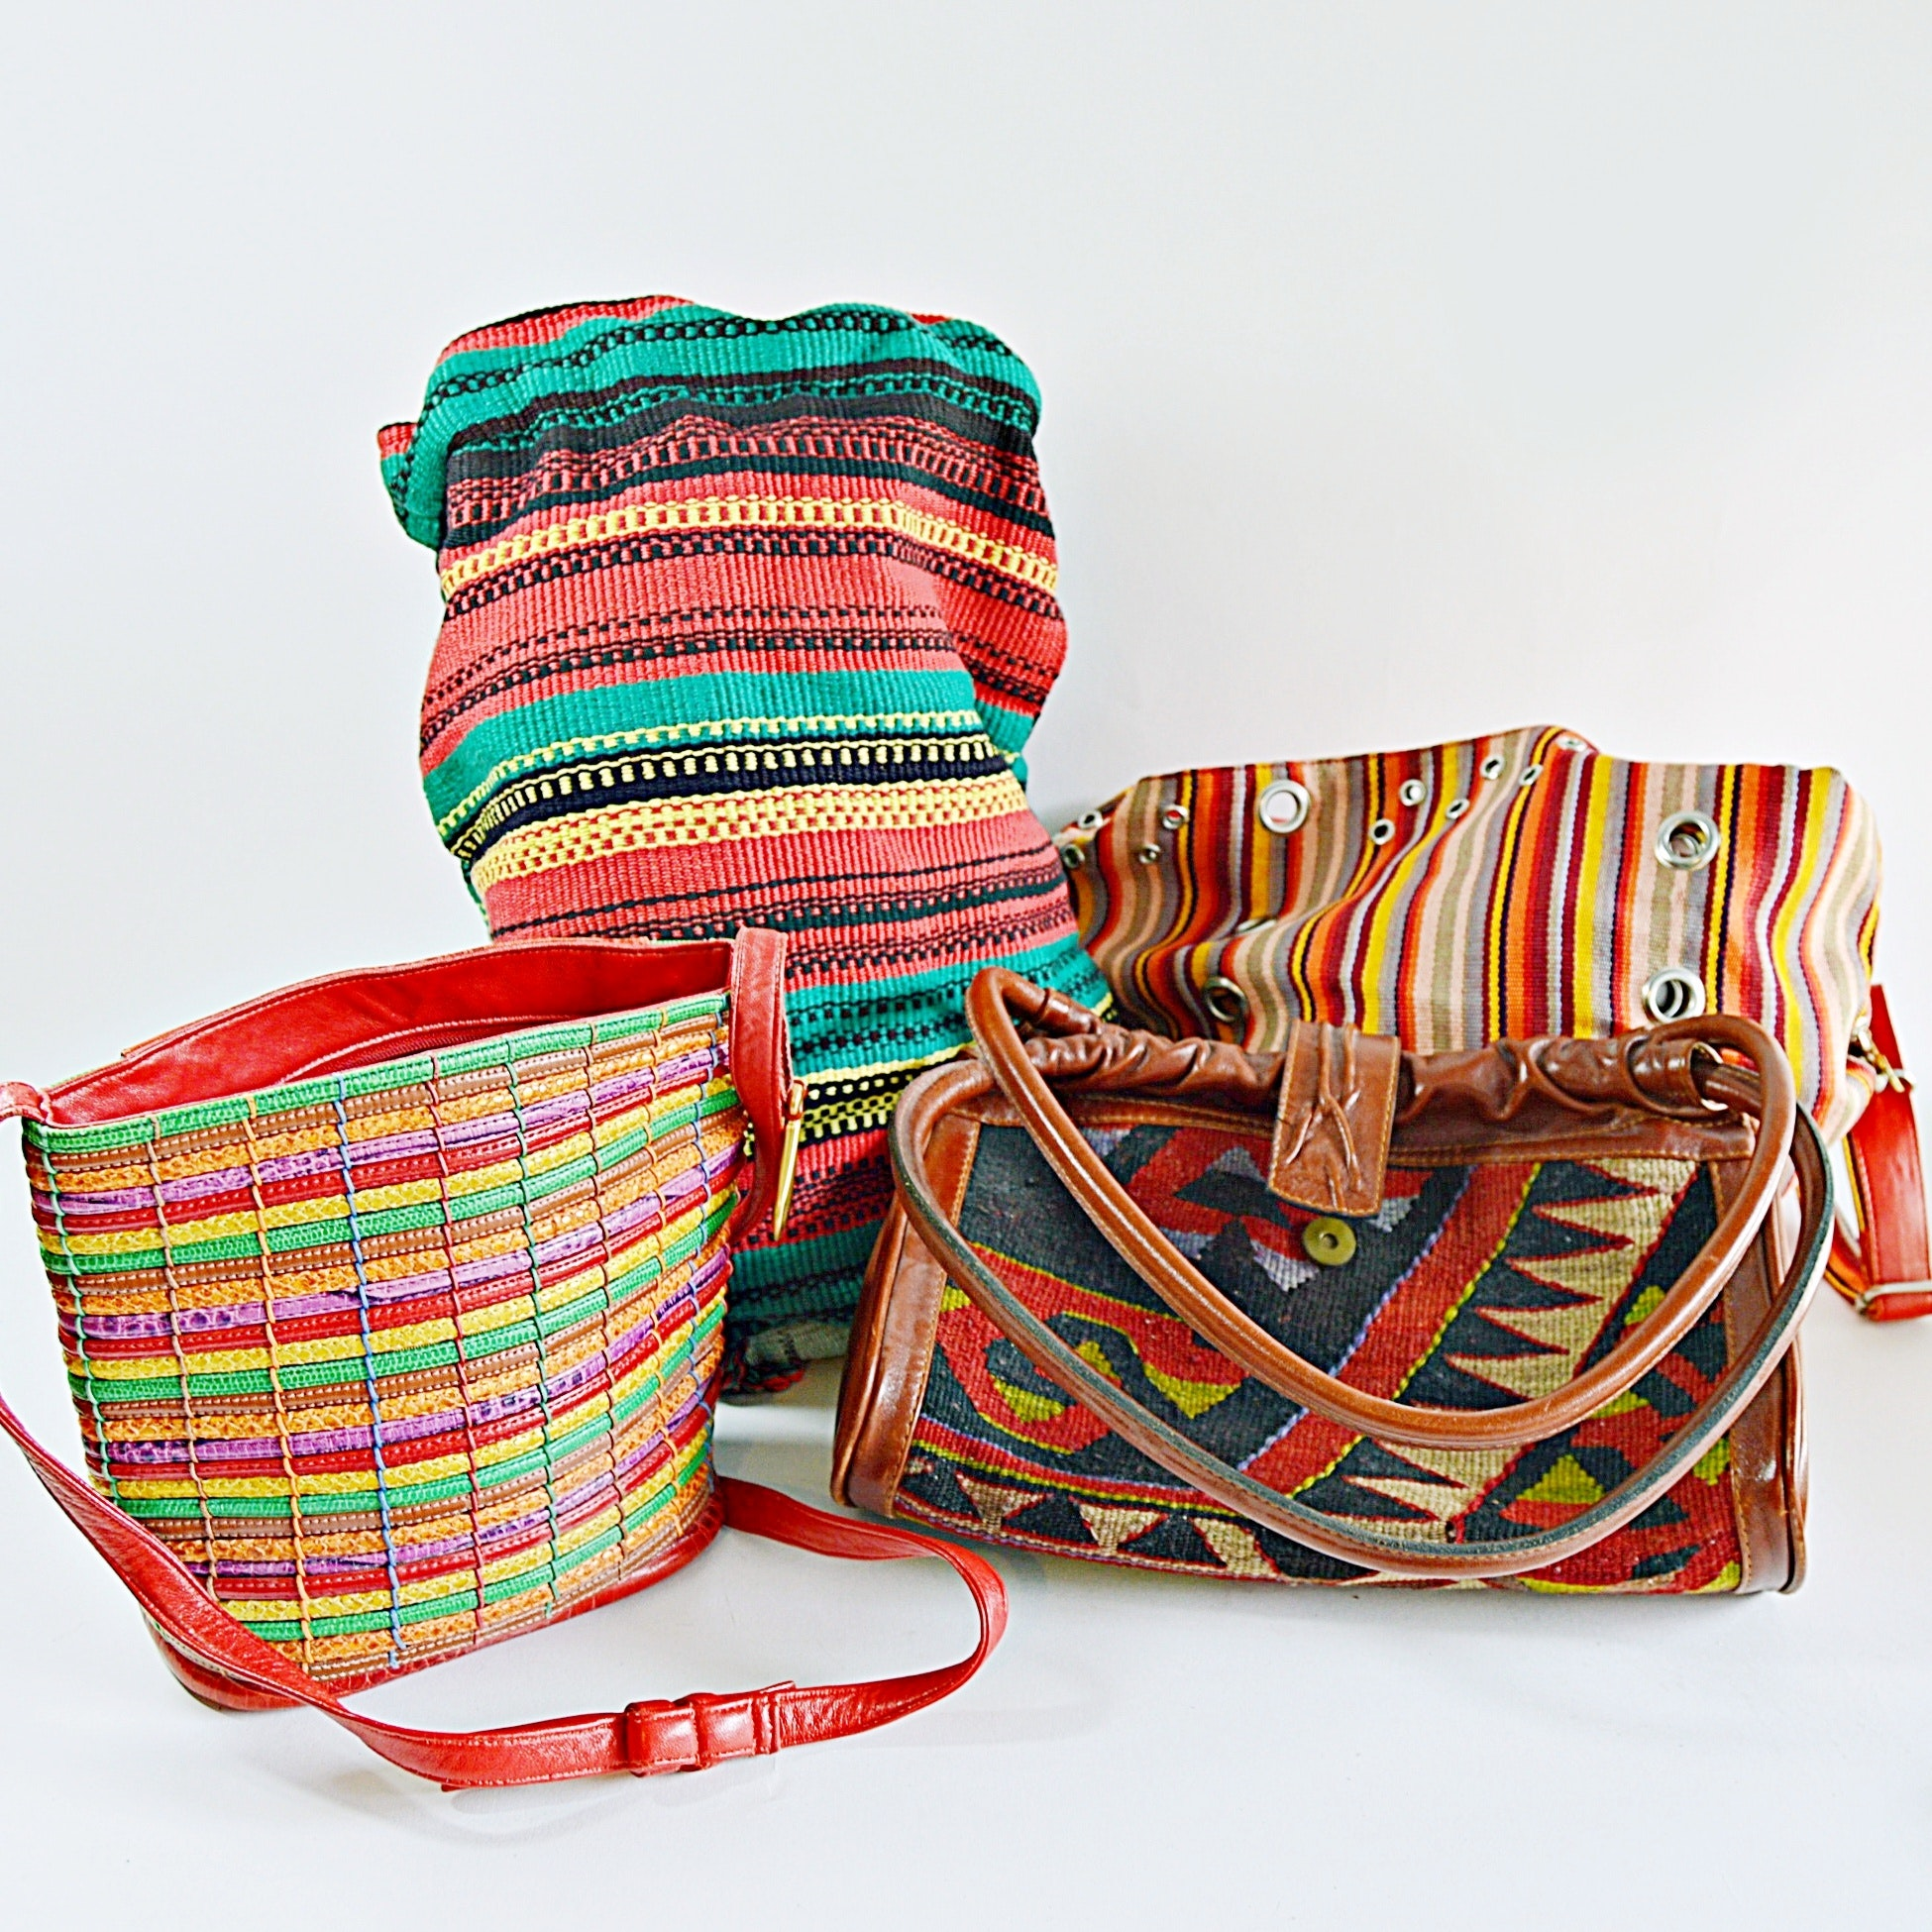 Group of Four Woven Bags Including Sharif